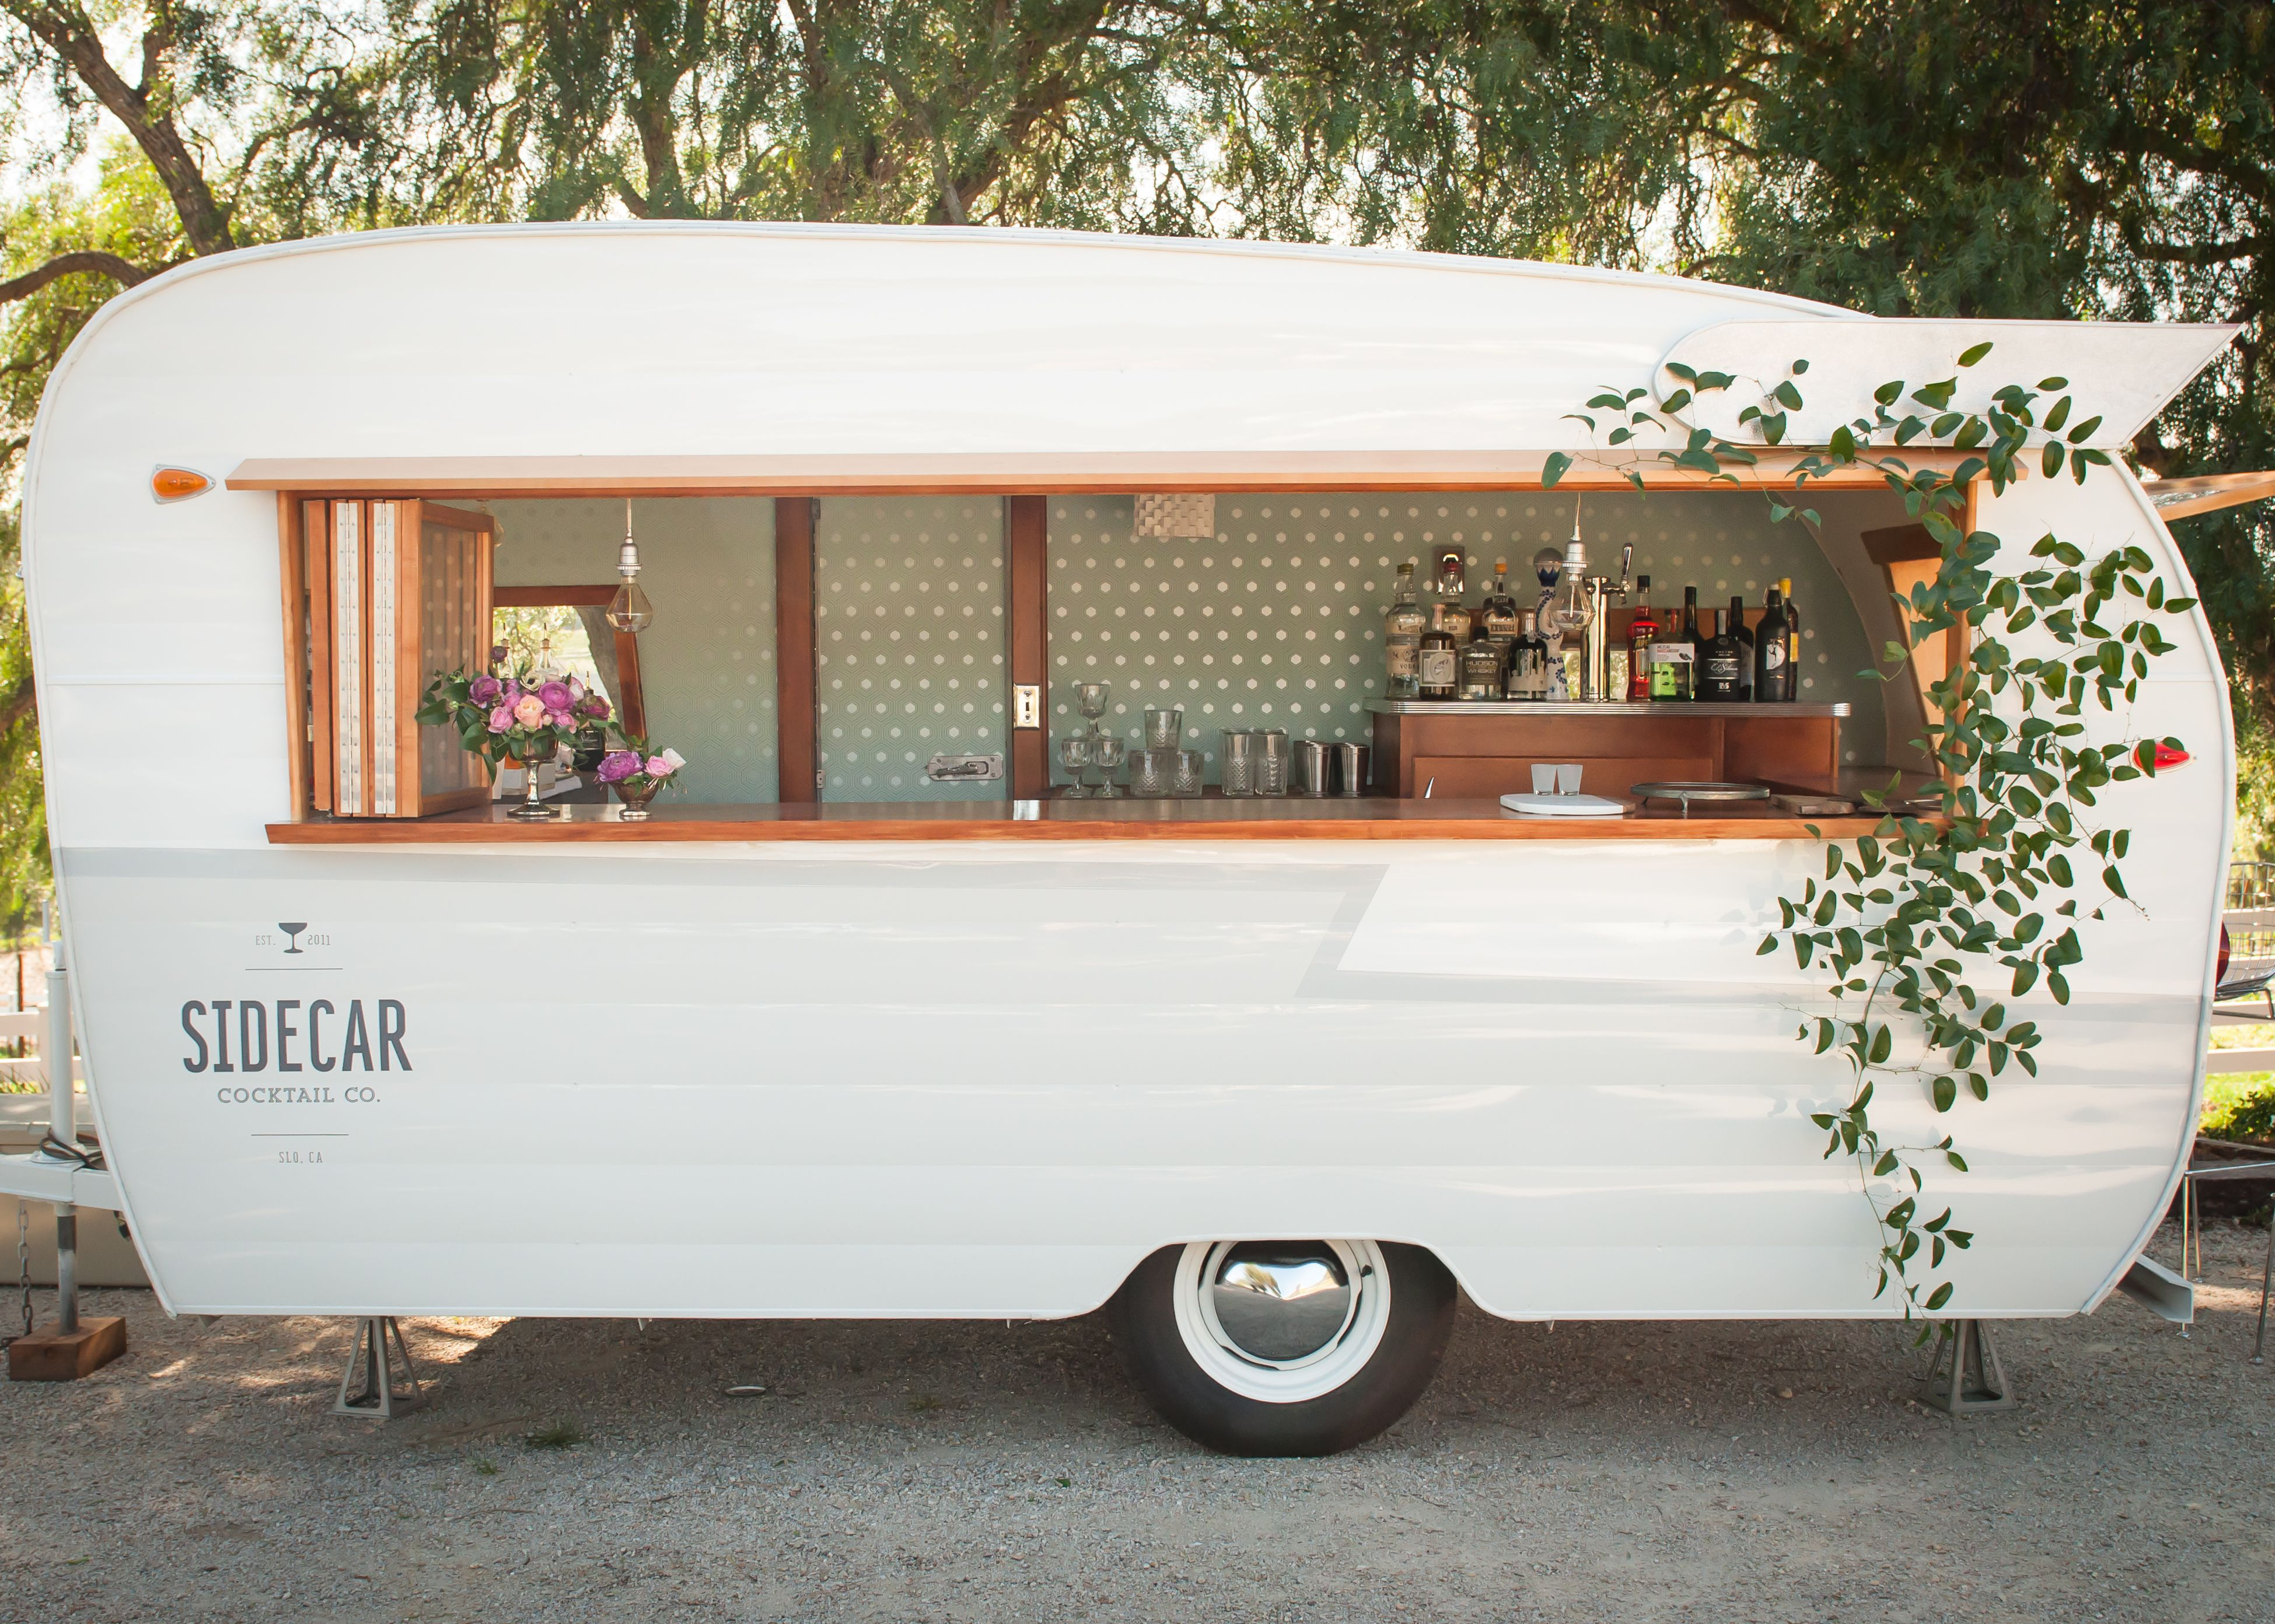 Let Sidecar Mix Custom Craft Cocktails Out Of Our 1961 Shasta Bar Trailer At Your Next Event